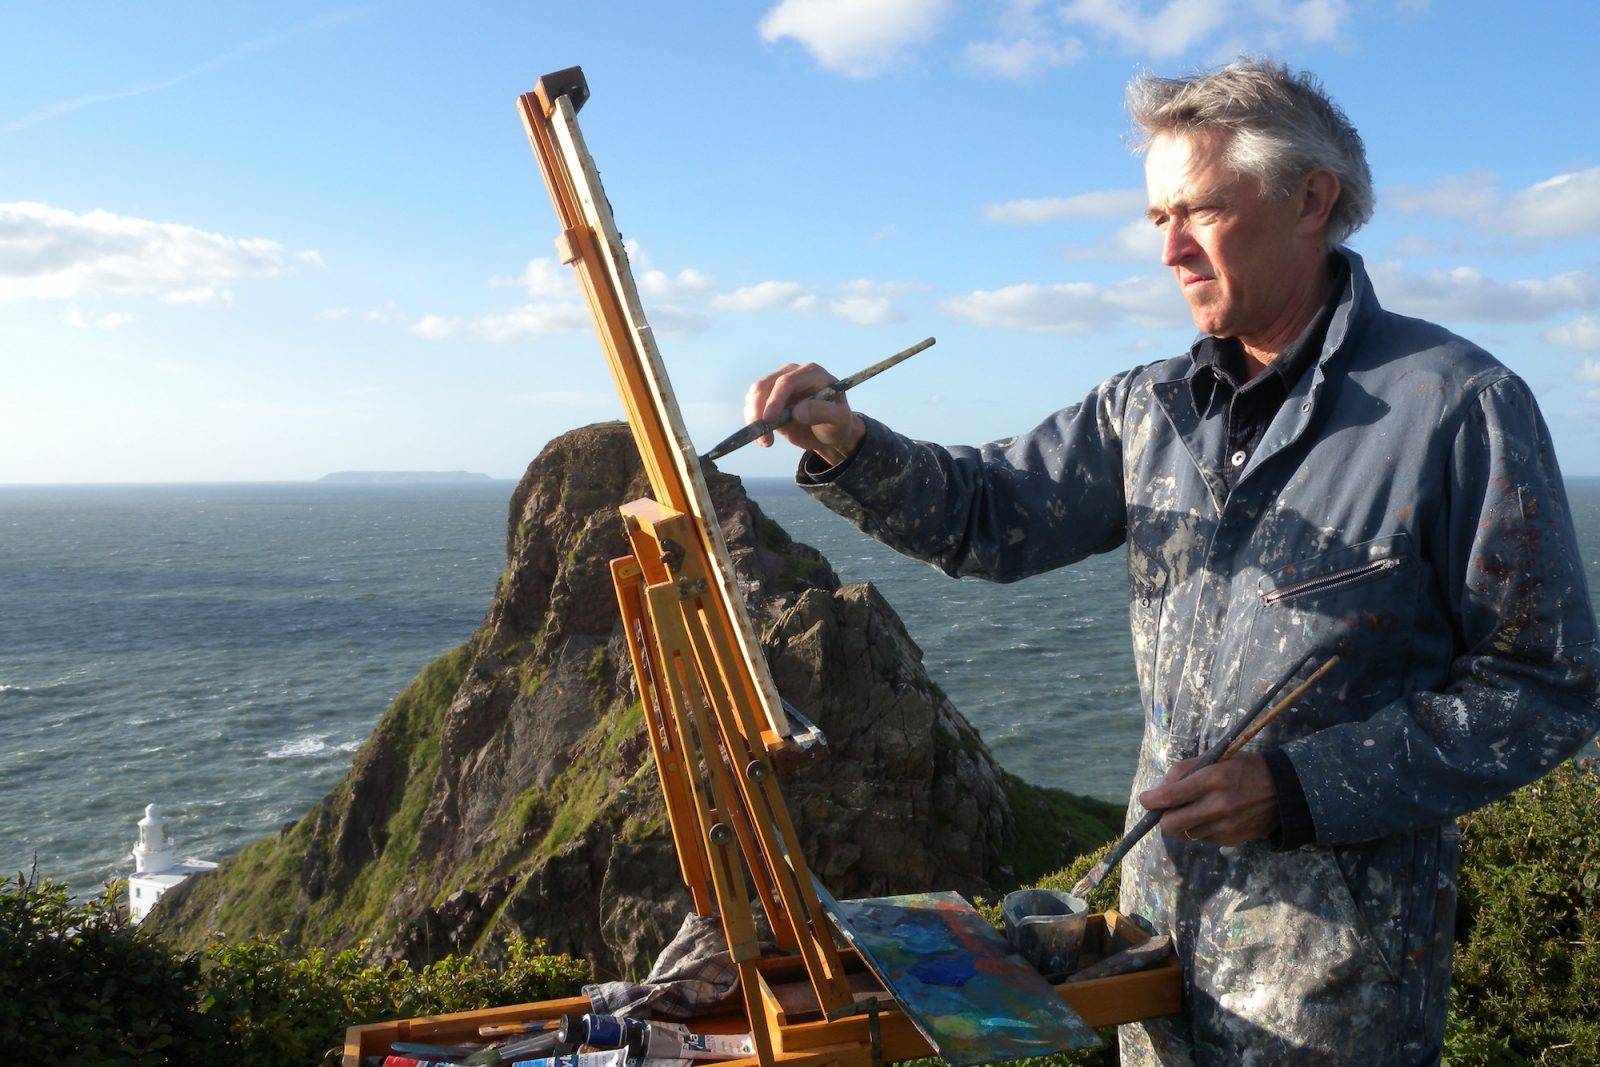 Jeremy Gardiner painting Hartland Point lighthouse, Devon plein air, photo © Veronica Falcão